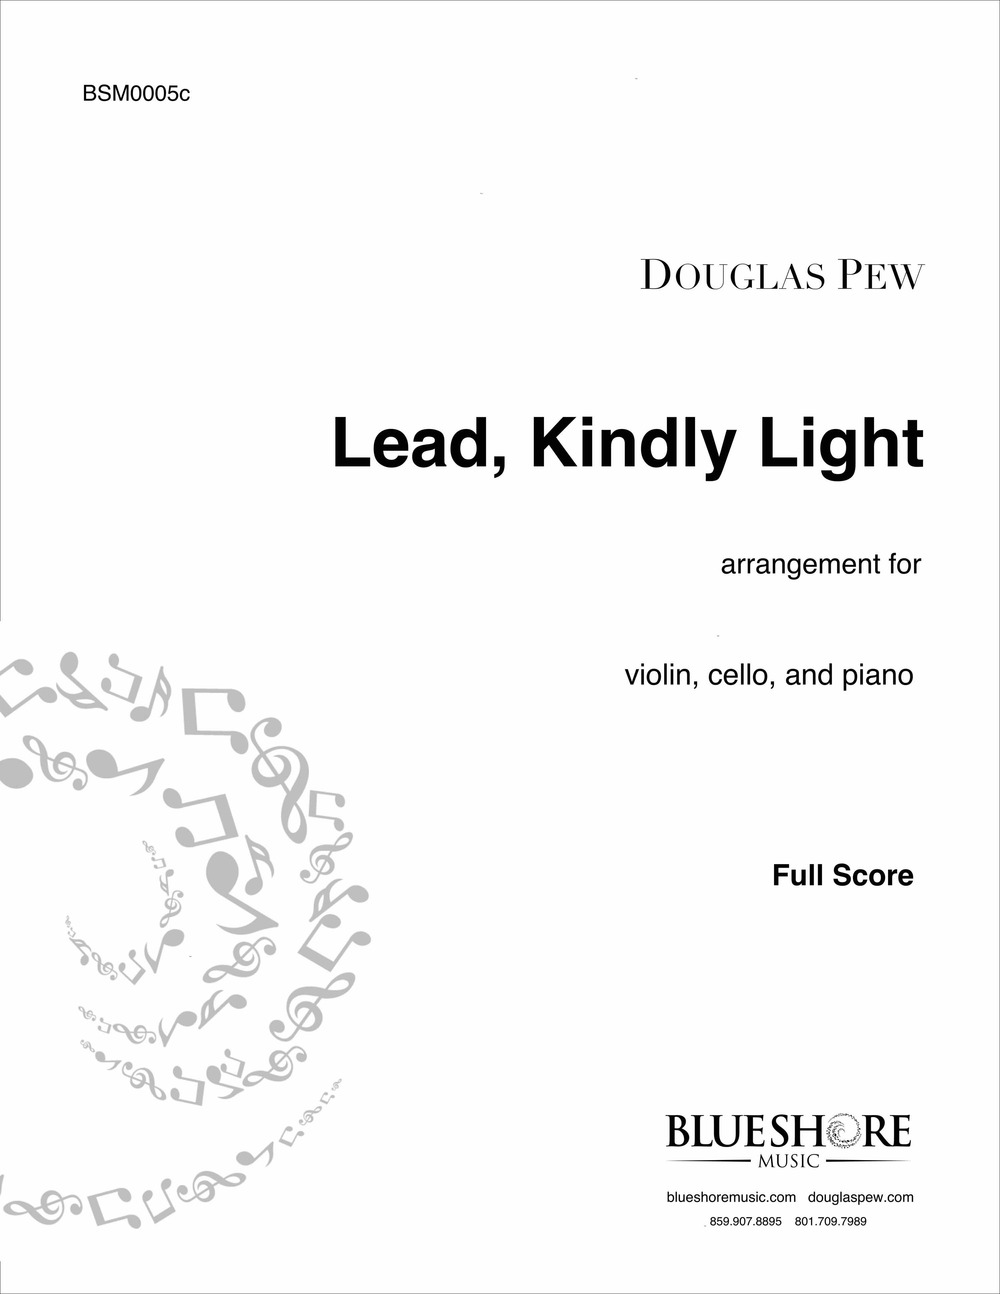 Lead, Kindly Light, for Violin, Cello, and PIano